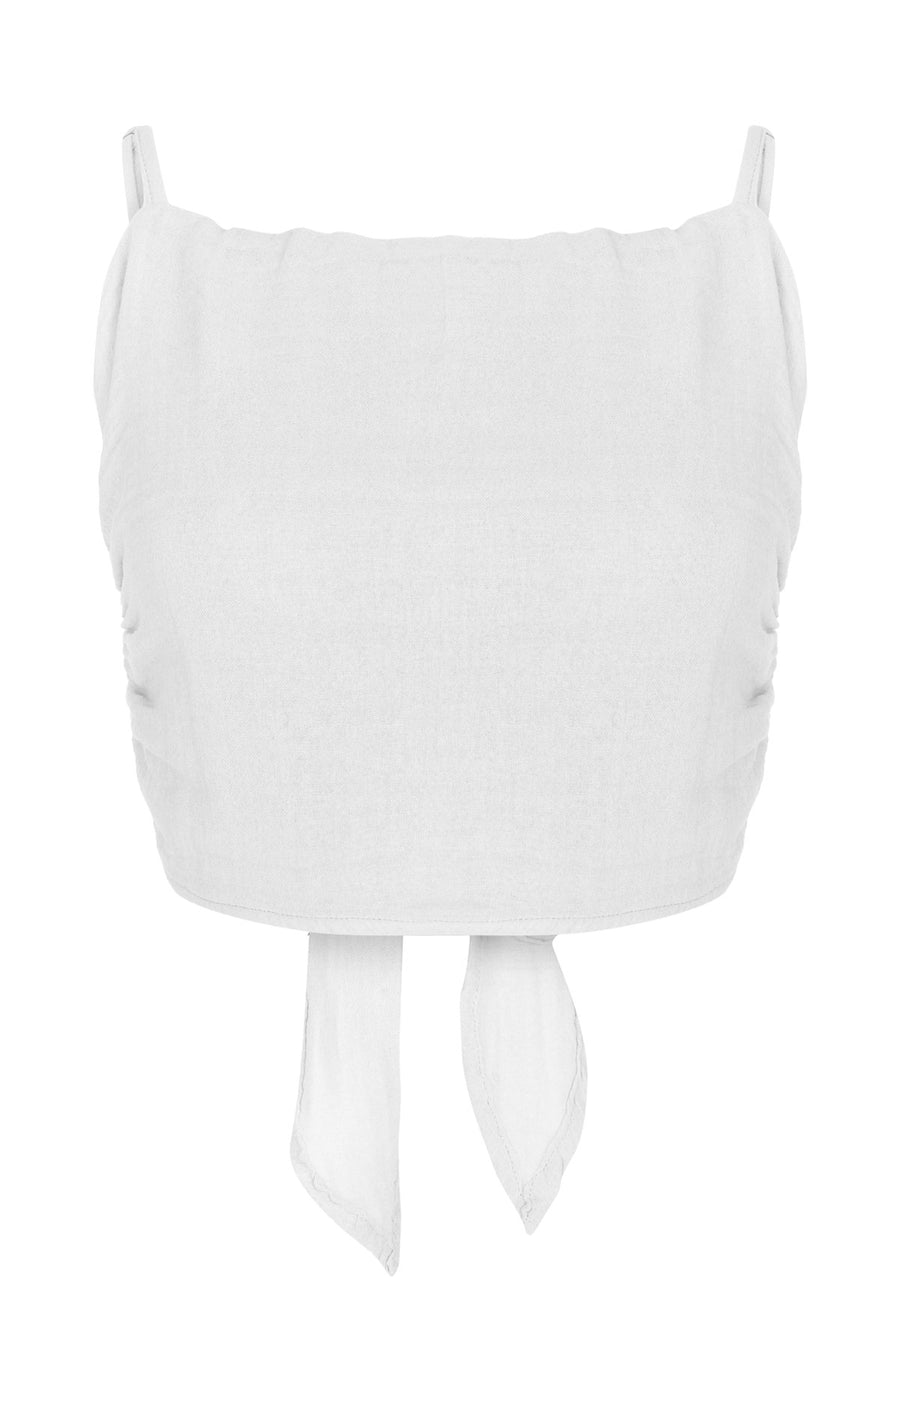 The Maya Tie Top in White